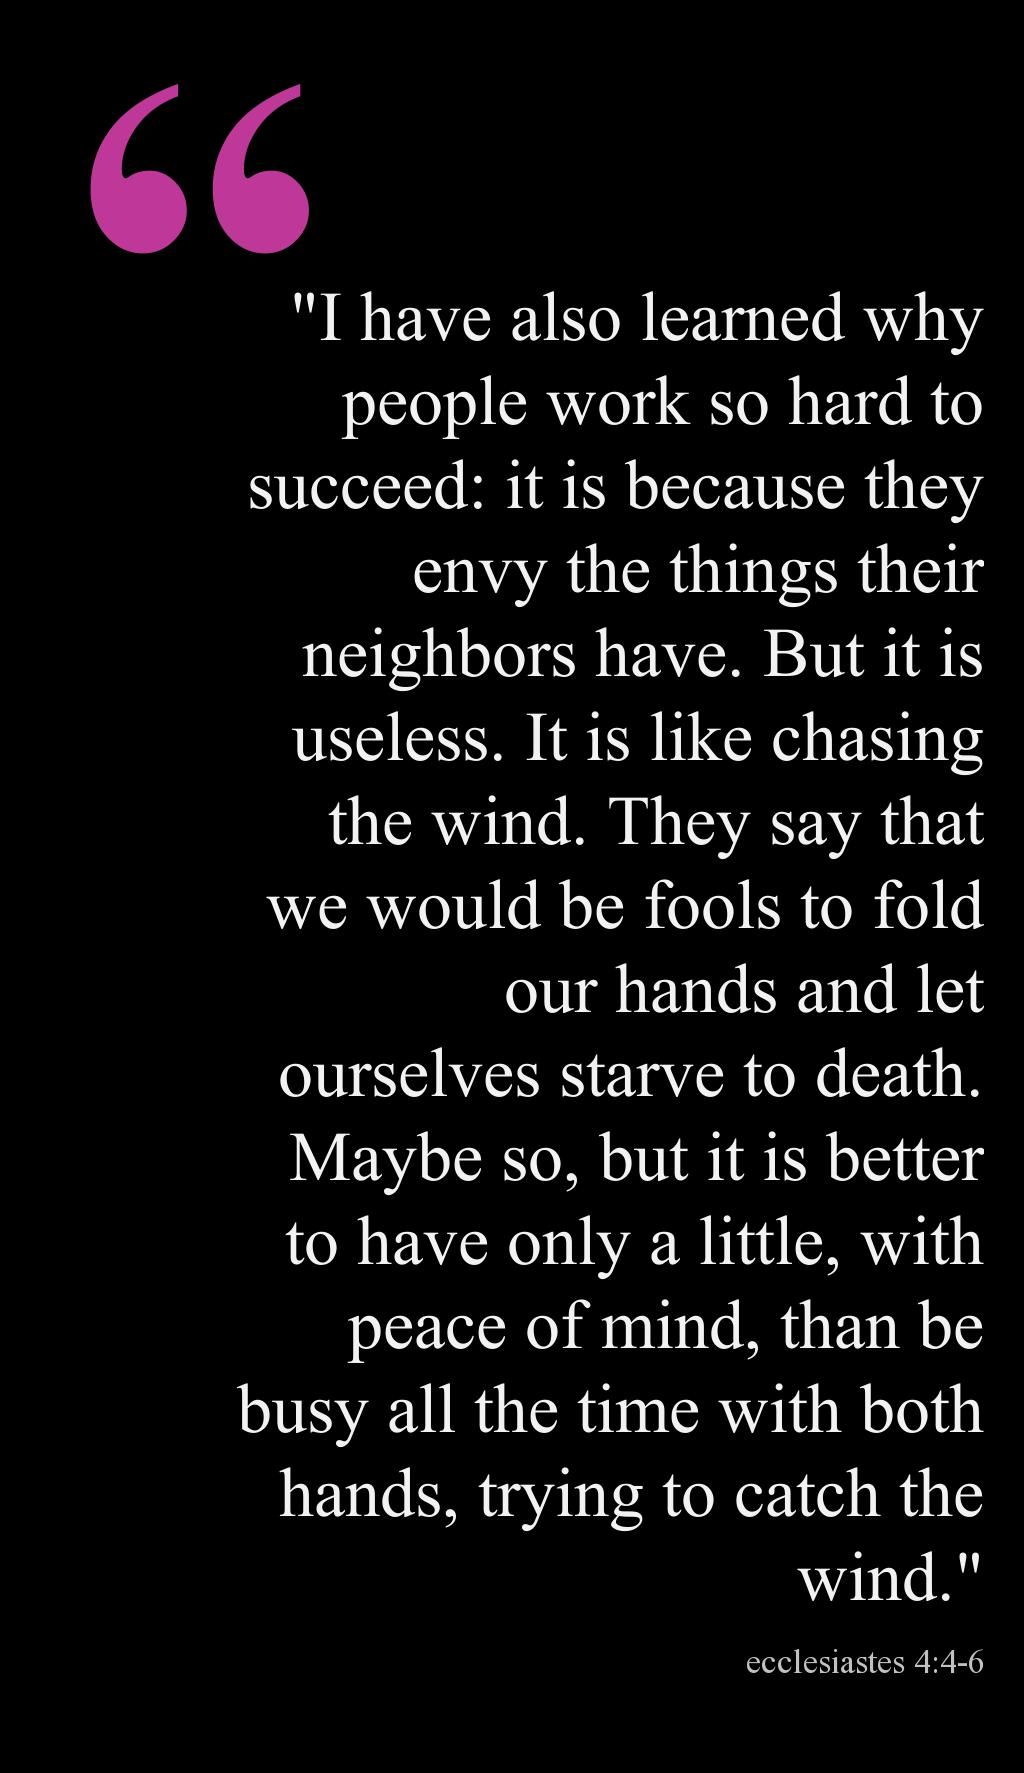 Ecclesiastes 4:4-6 [it's better to have little & peace of